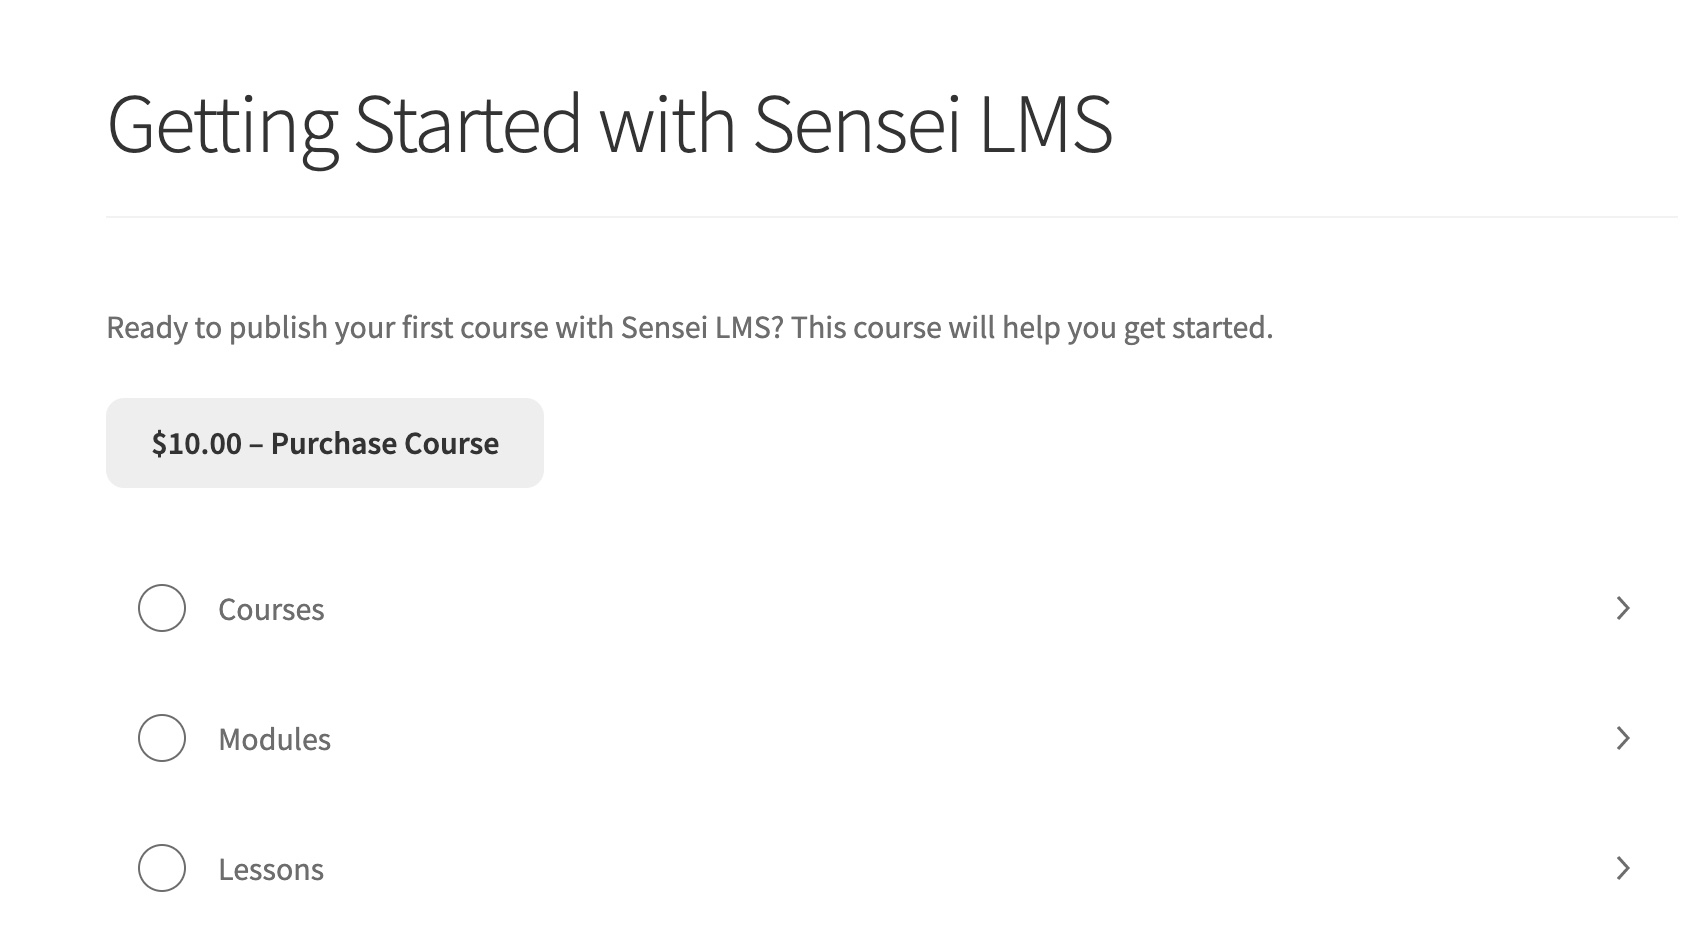 Screenshot of the single course page showing the Purchase Course button